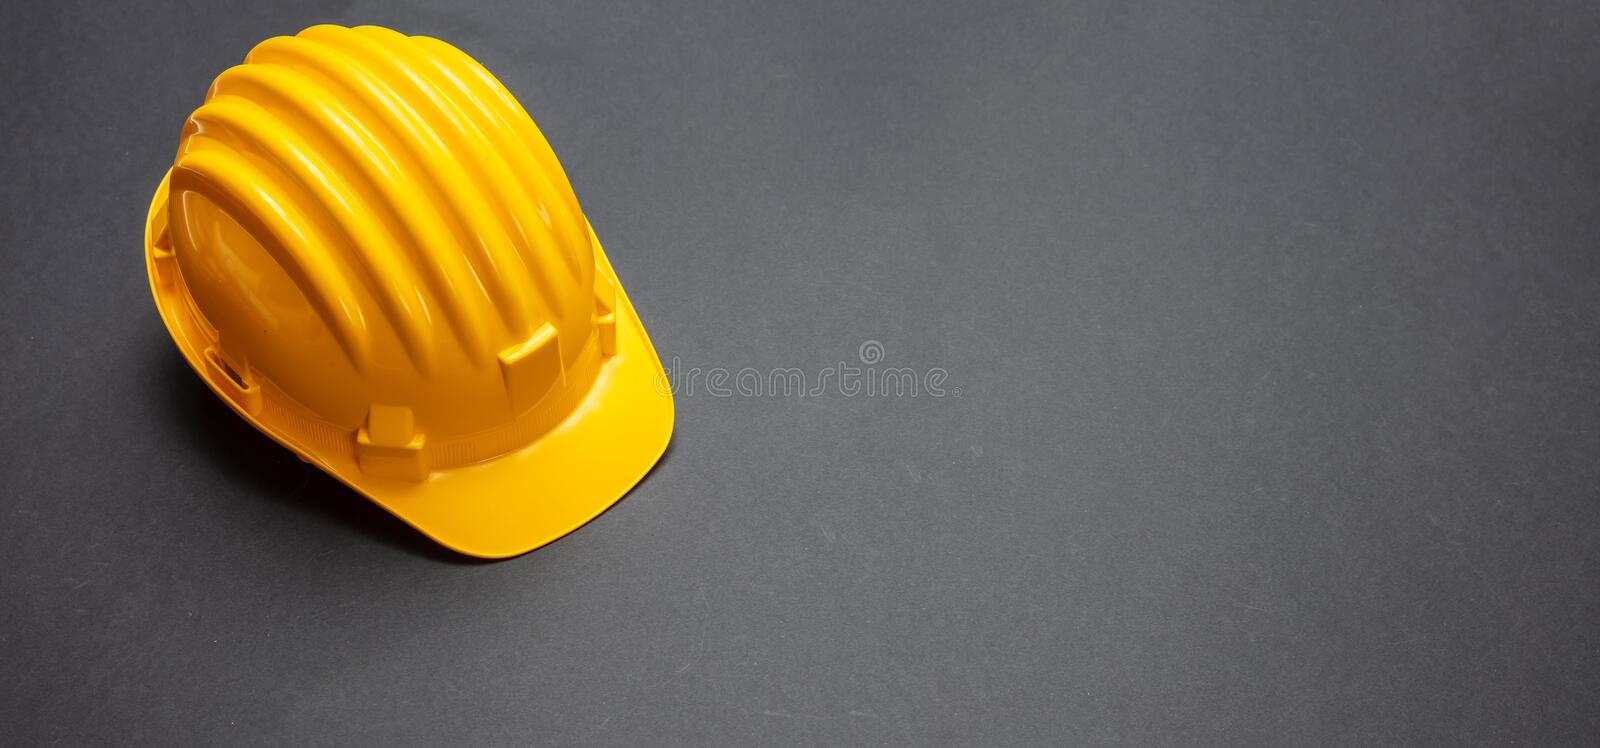 Construction project safety, Yellow hard hat on black color background. Copy space royalty free stock image